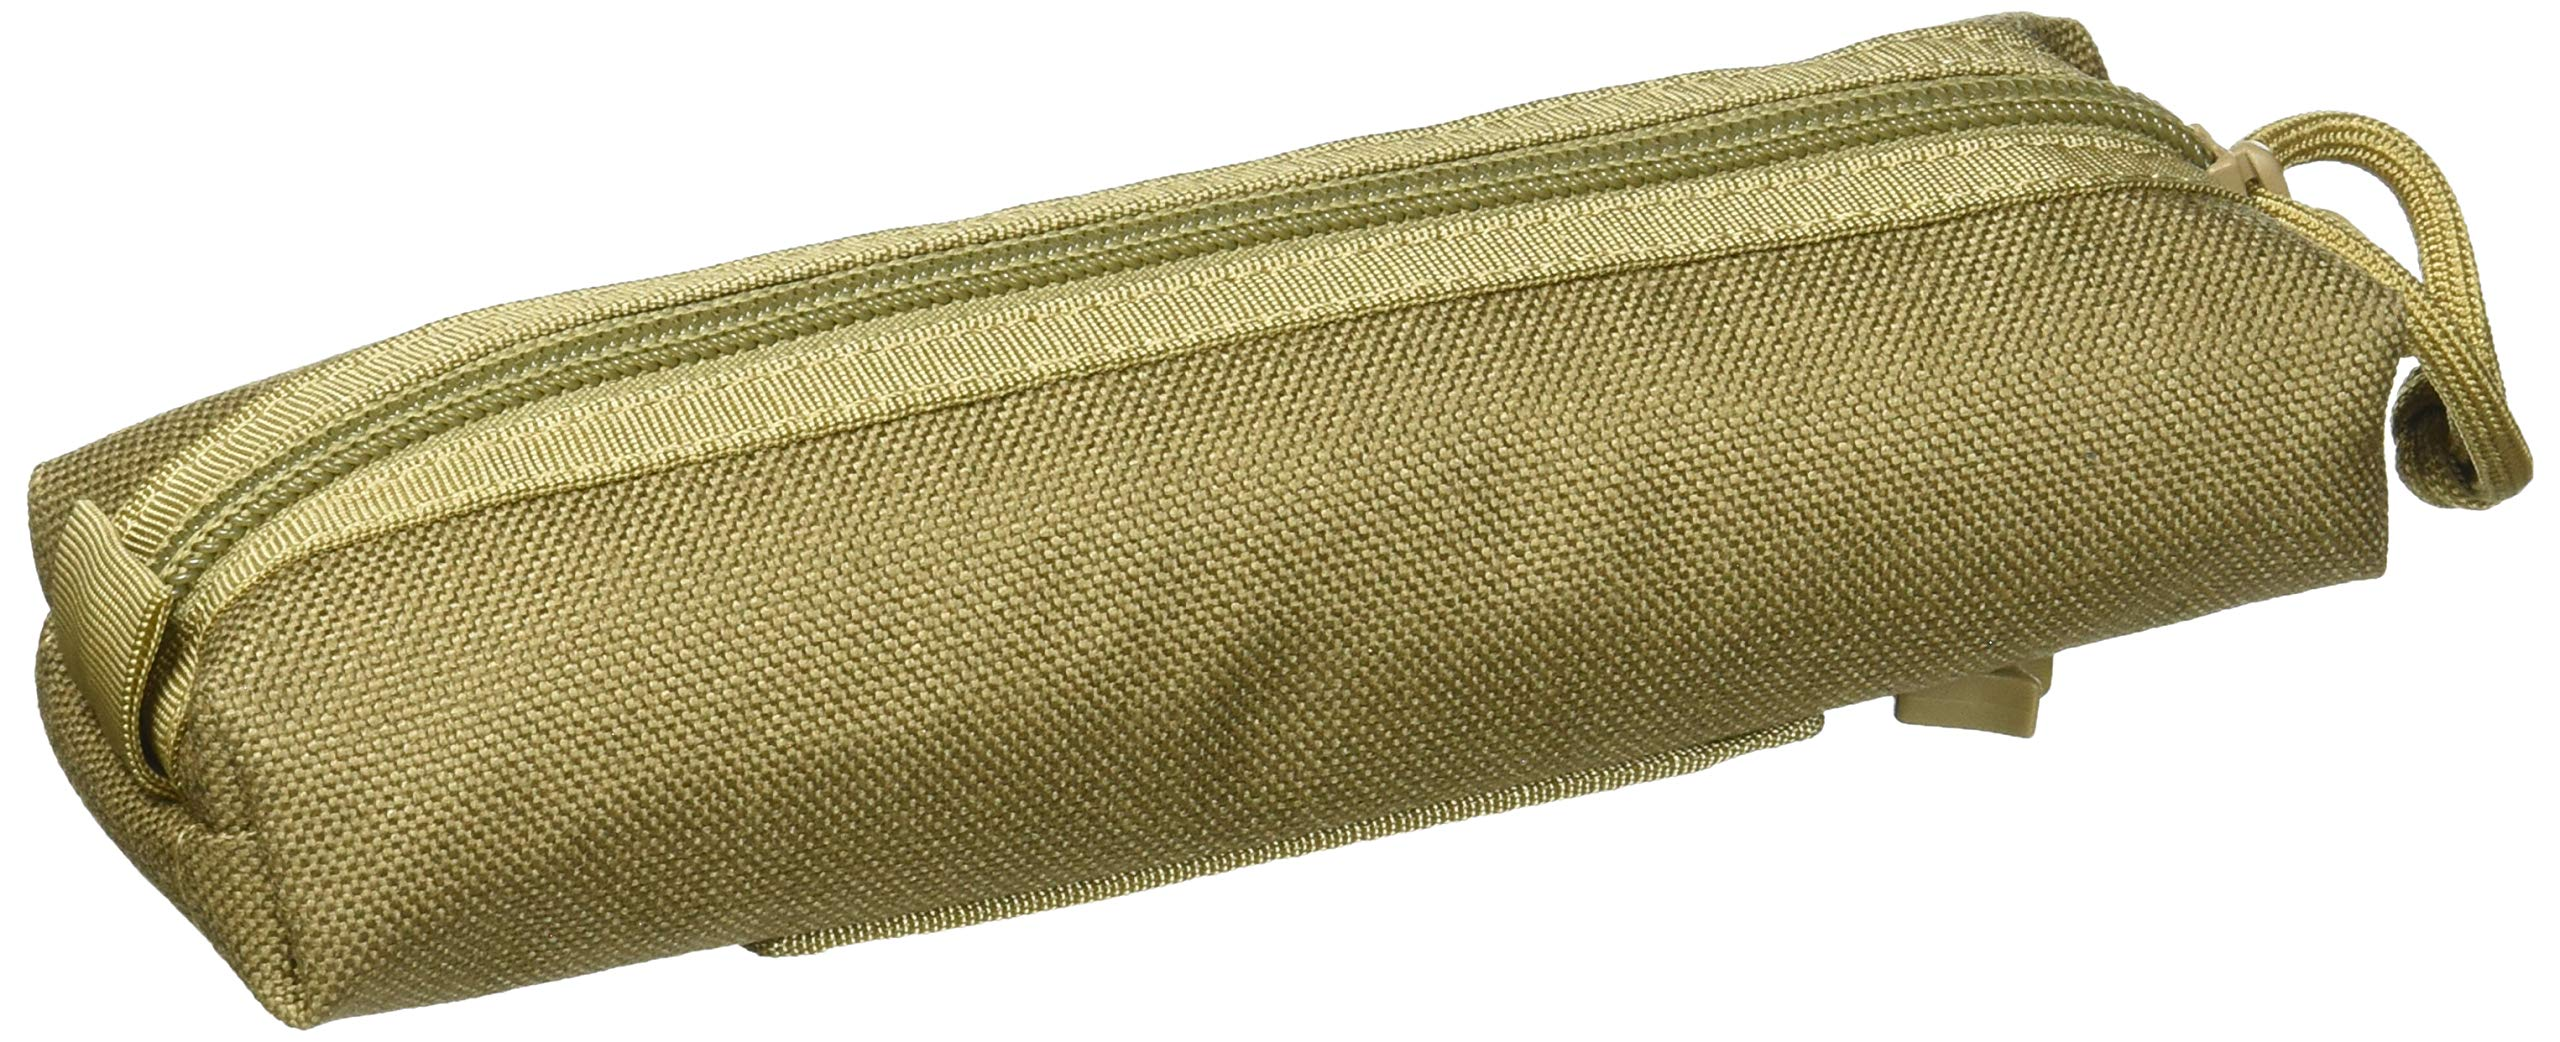 81z%2B7xK1bdL - Maxpedition Gear Cocoon Pouch